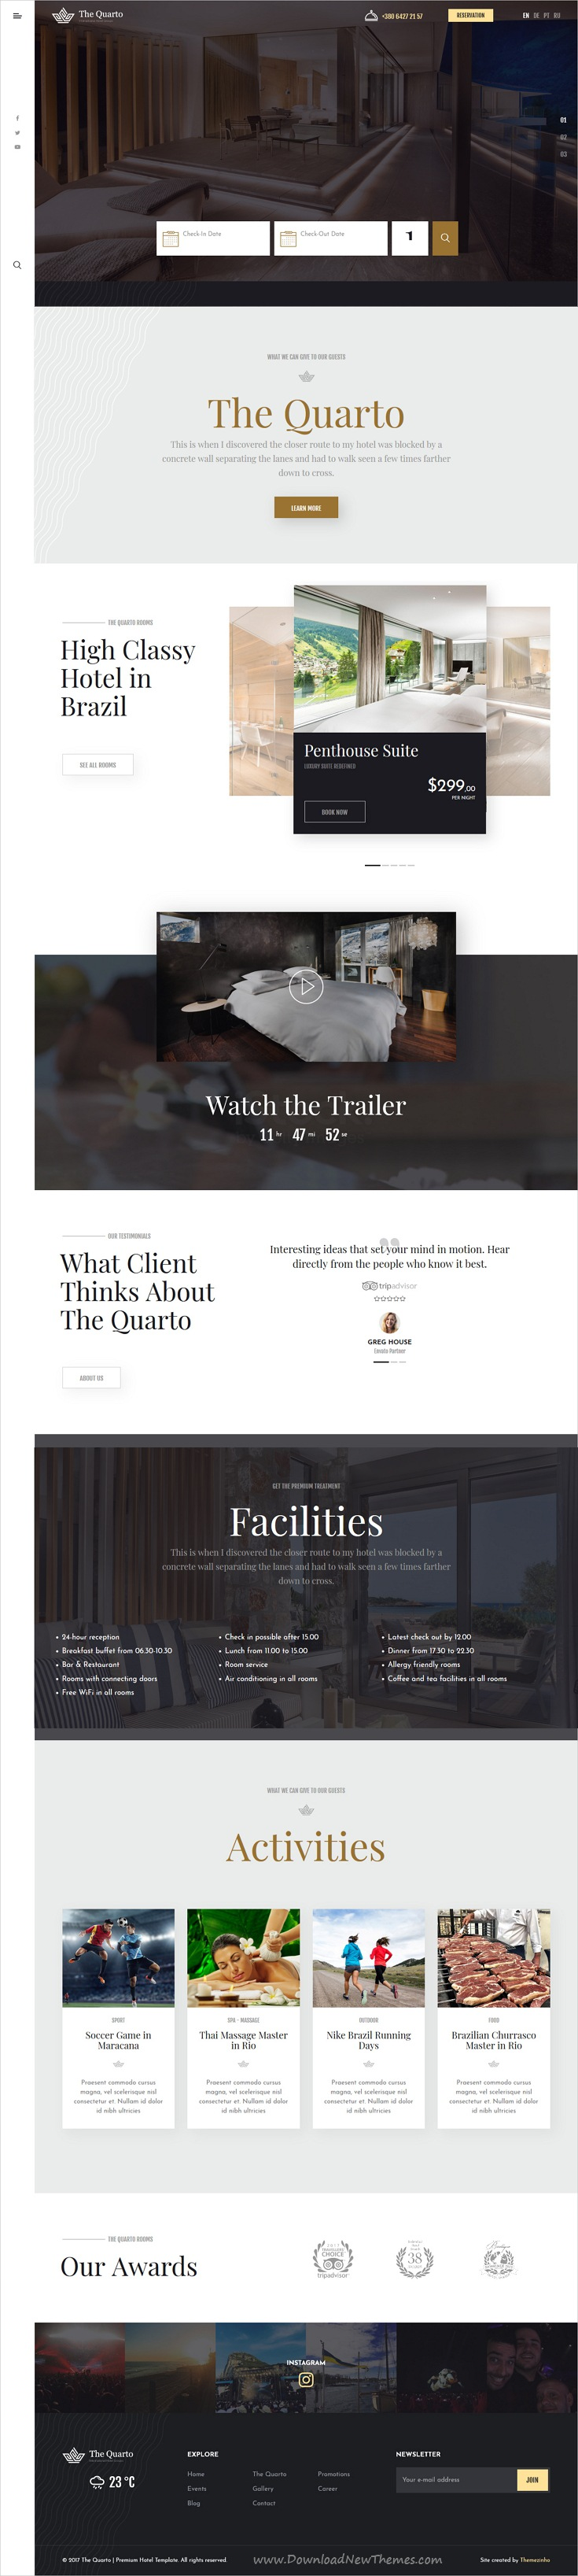 The Quarto | Premium Hotel HTML Template | Html templates, Premium ...